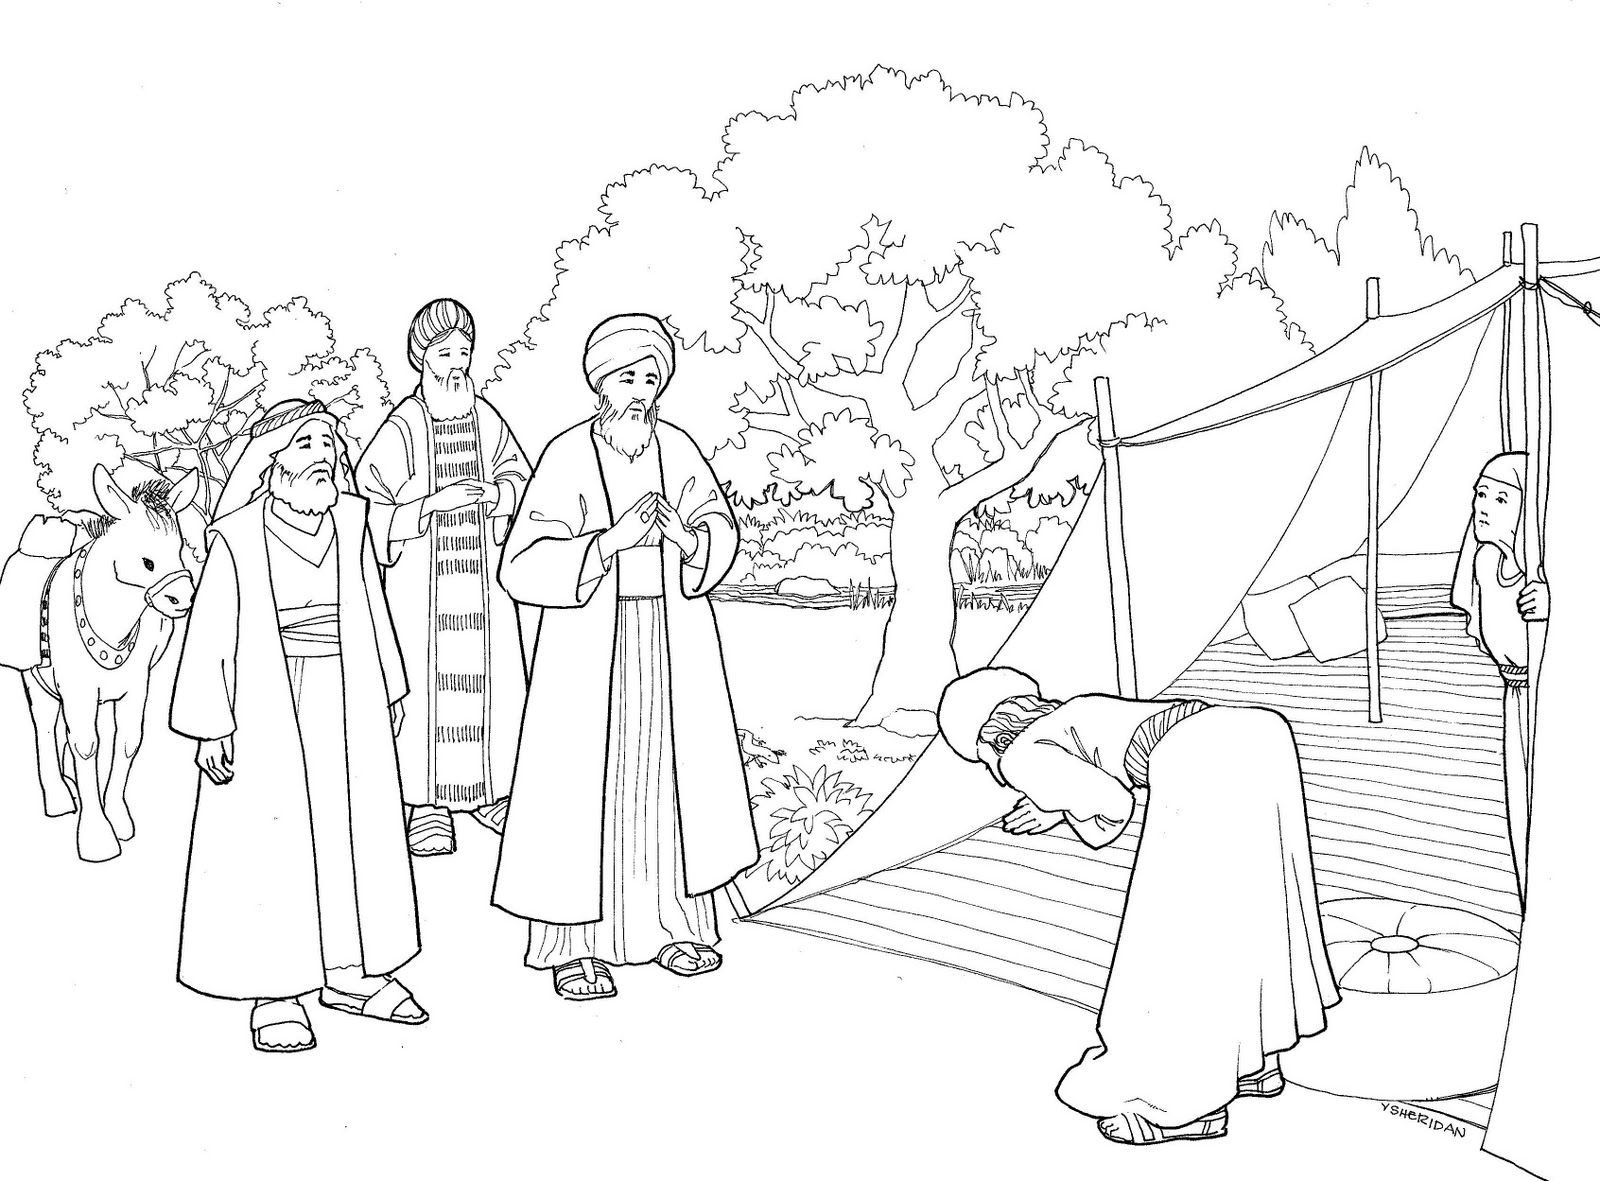 isaac and rebekah coloring page rebecca and isaac coloring page page rebekah coloring isaac and